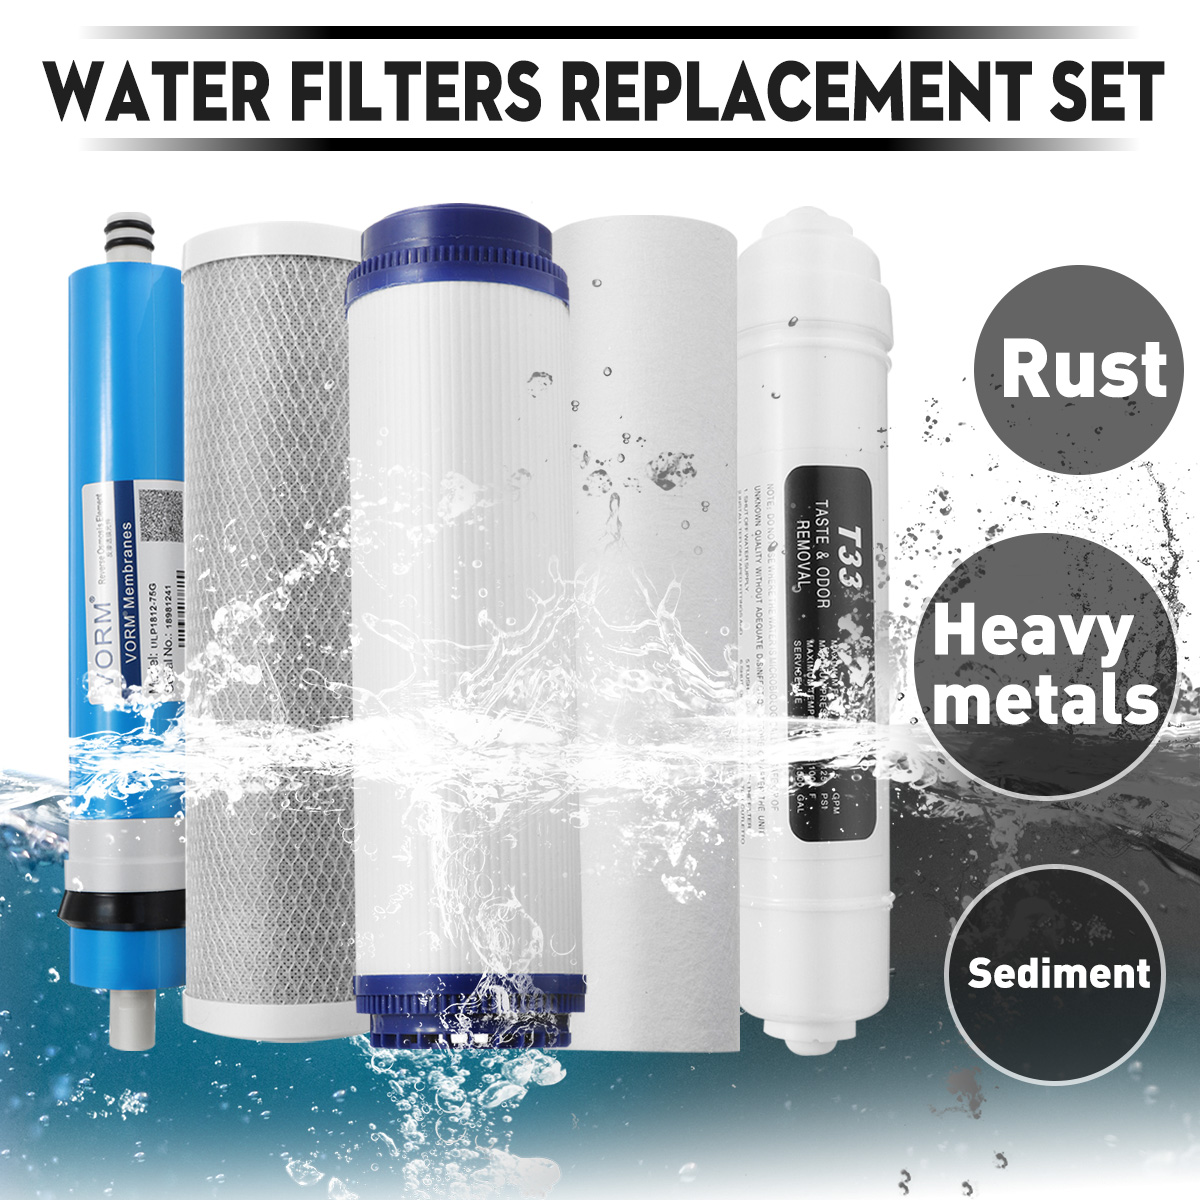 75/100/125 GPD RO membrane 5 stage water filter purifier treatment reverse osmosis system Water Filters Replacement Set75/100/125 GPD RO membrane 5 stage water filter purifier treatment reverse osmosis system Water Filters Replacement Set